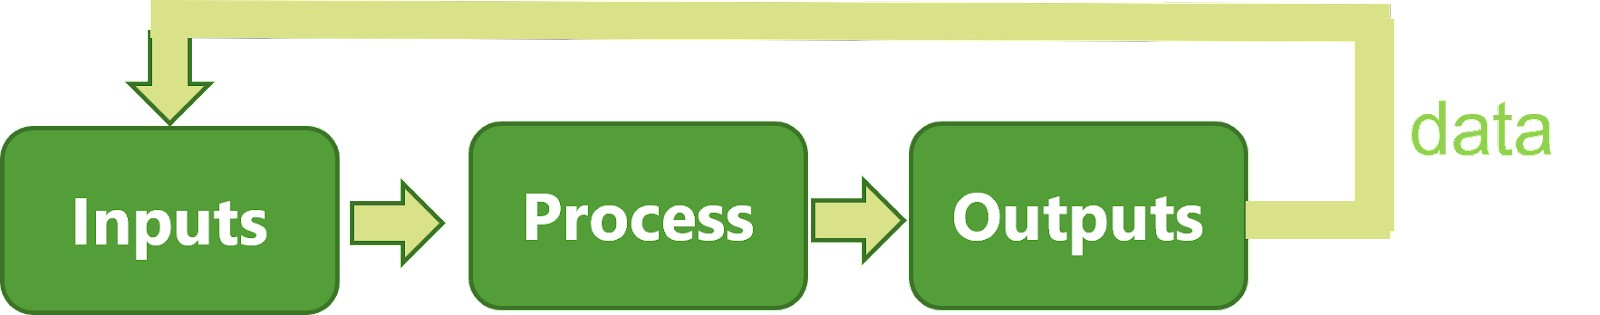 input process outputs flowchart showing how data should be involved in all planning phases